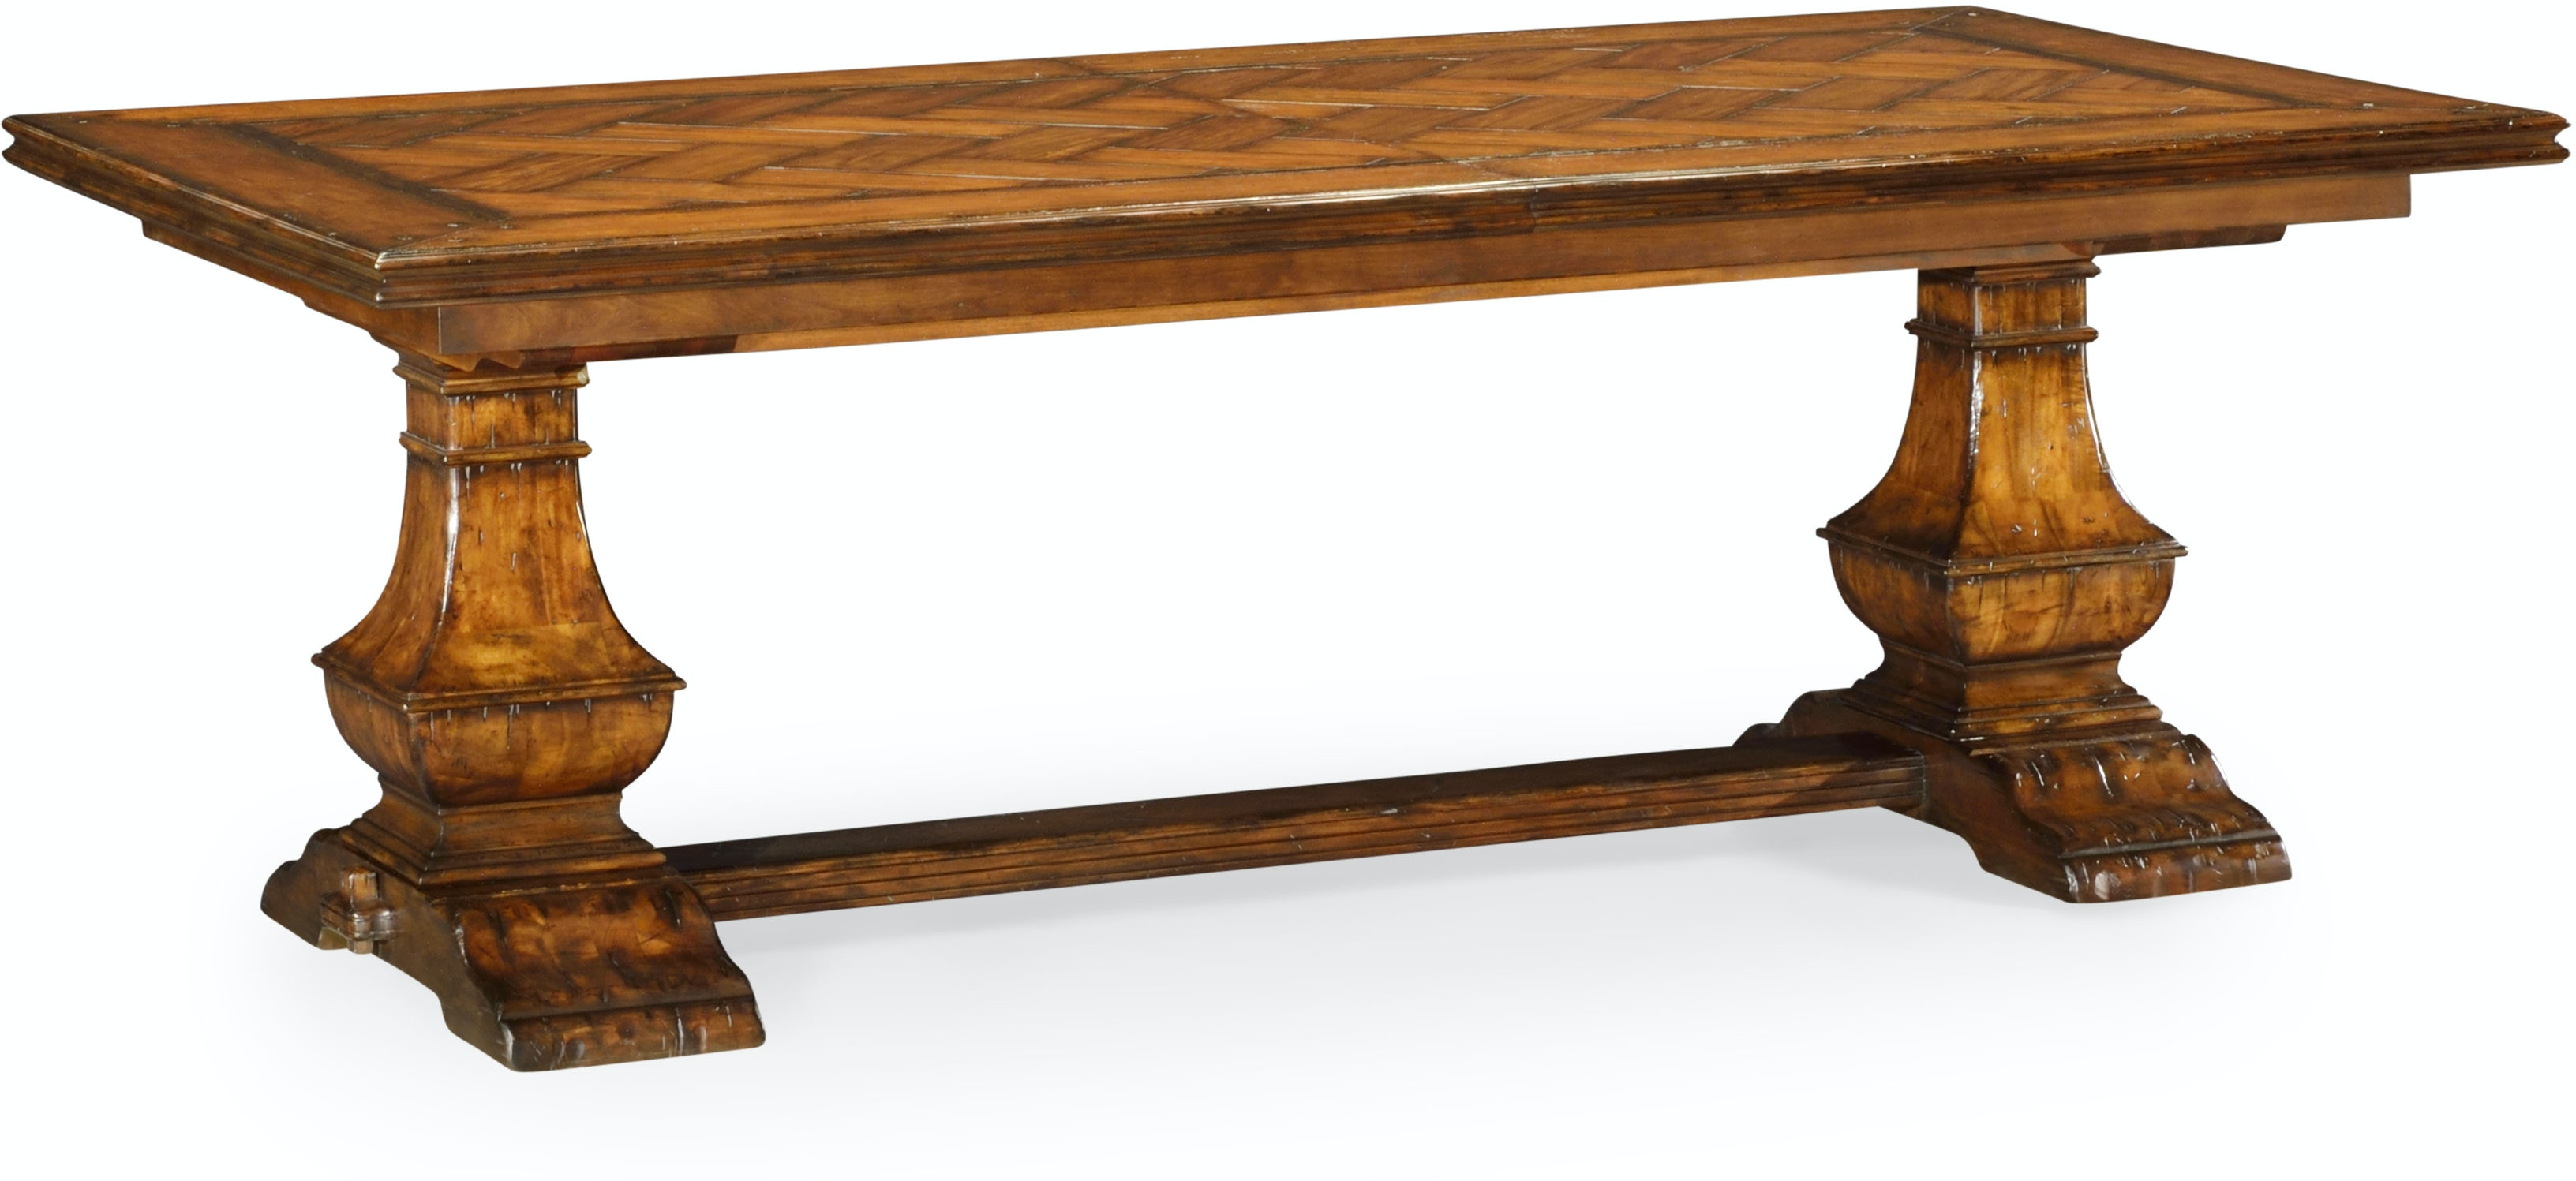 86 Extending Dining Table In Country Walnut Qj49116986lcfw